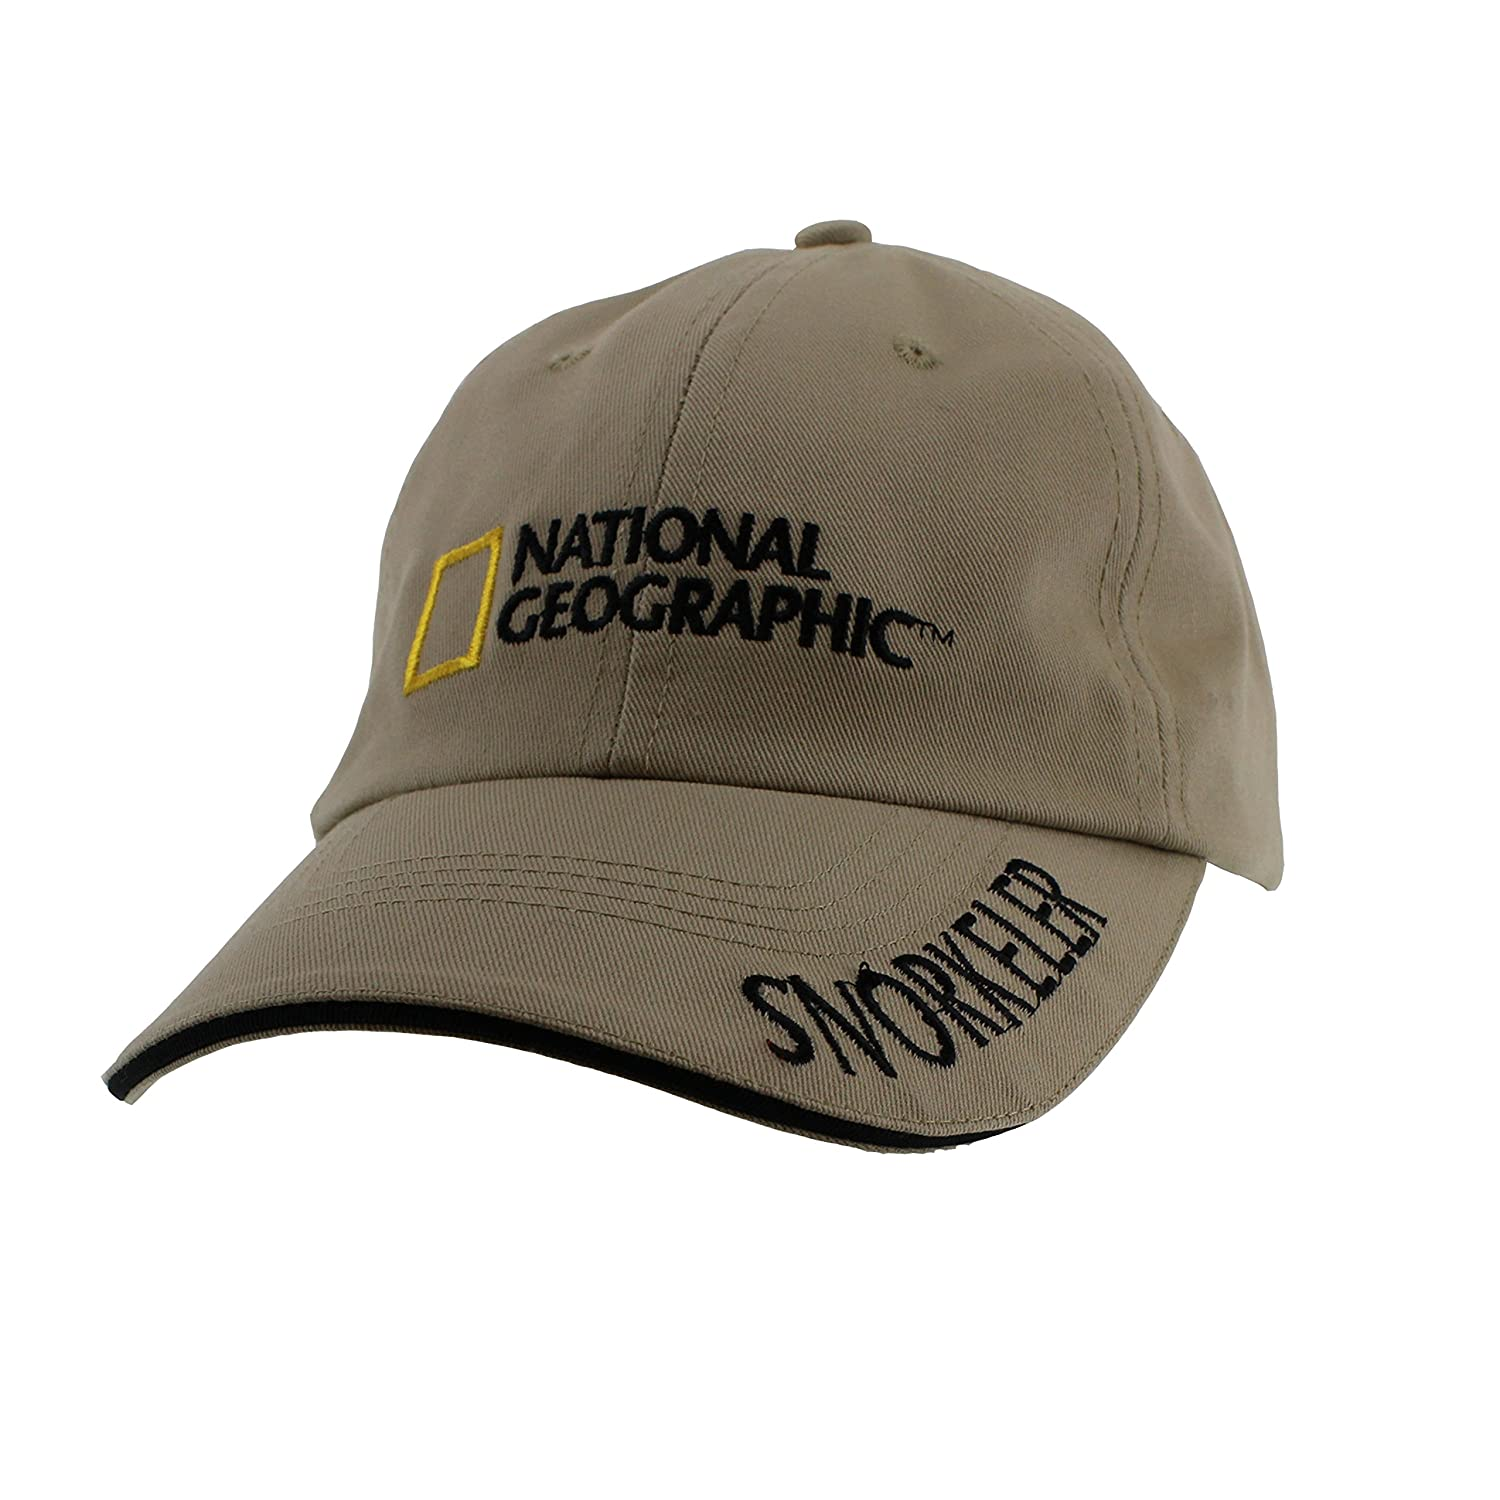 National Geographic Snorkeler Dive Hat Khaki